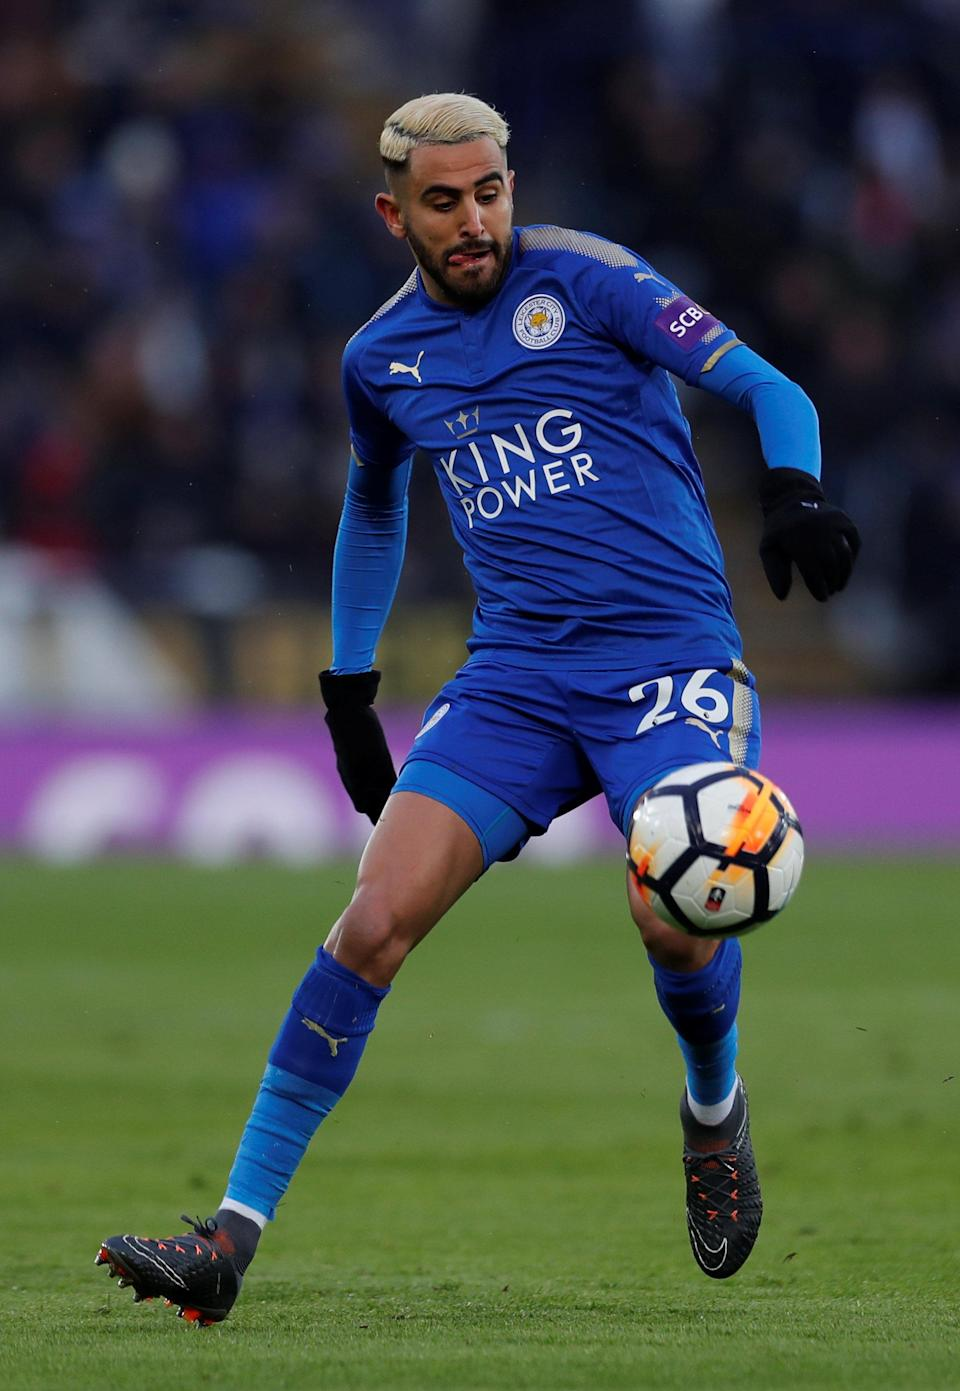 Riyad Mahrez has struggled for goals recently, shooting just twice in his last two games.